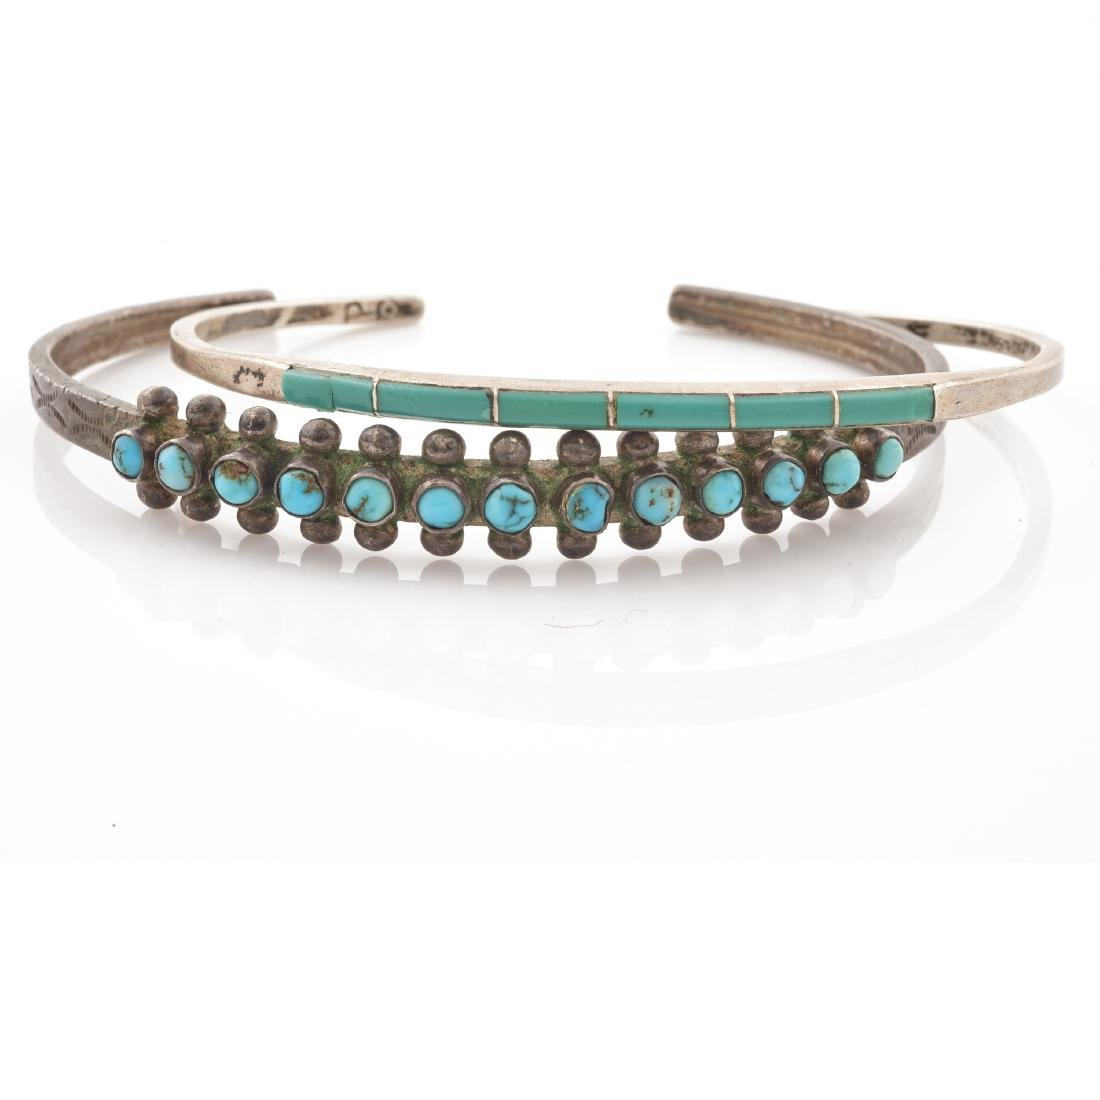 A collection of two Native American turquoise, silver